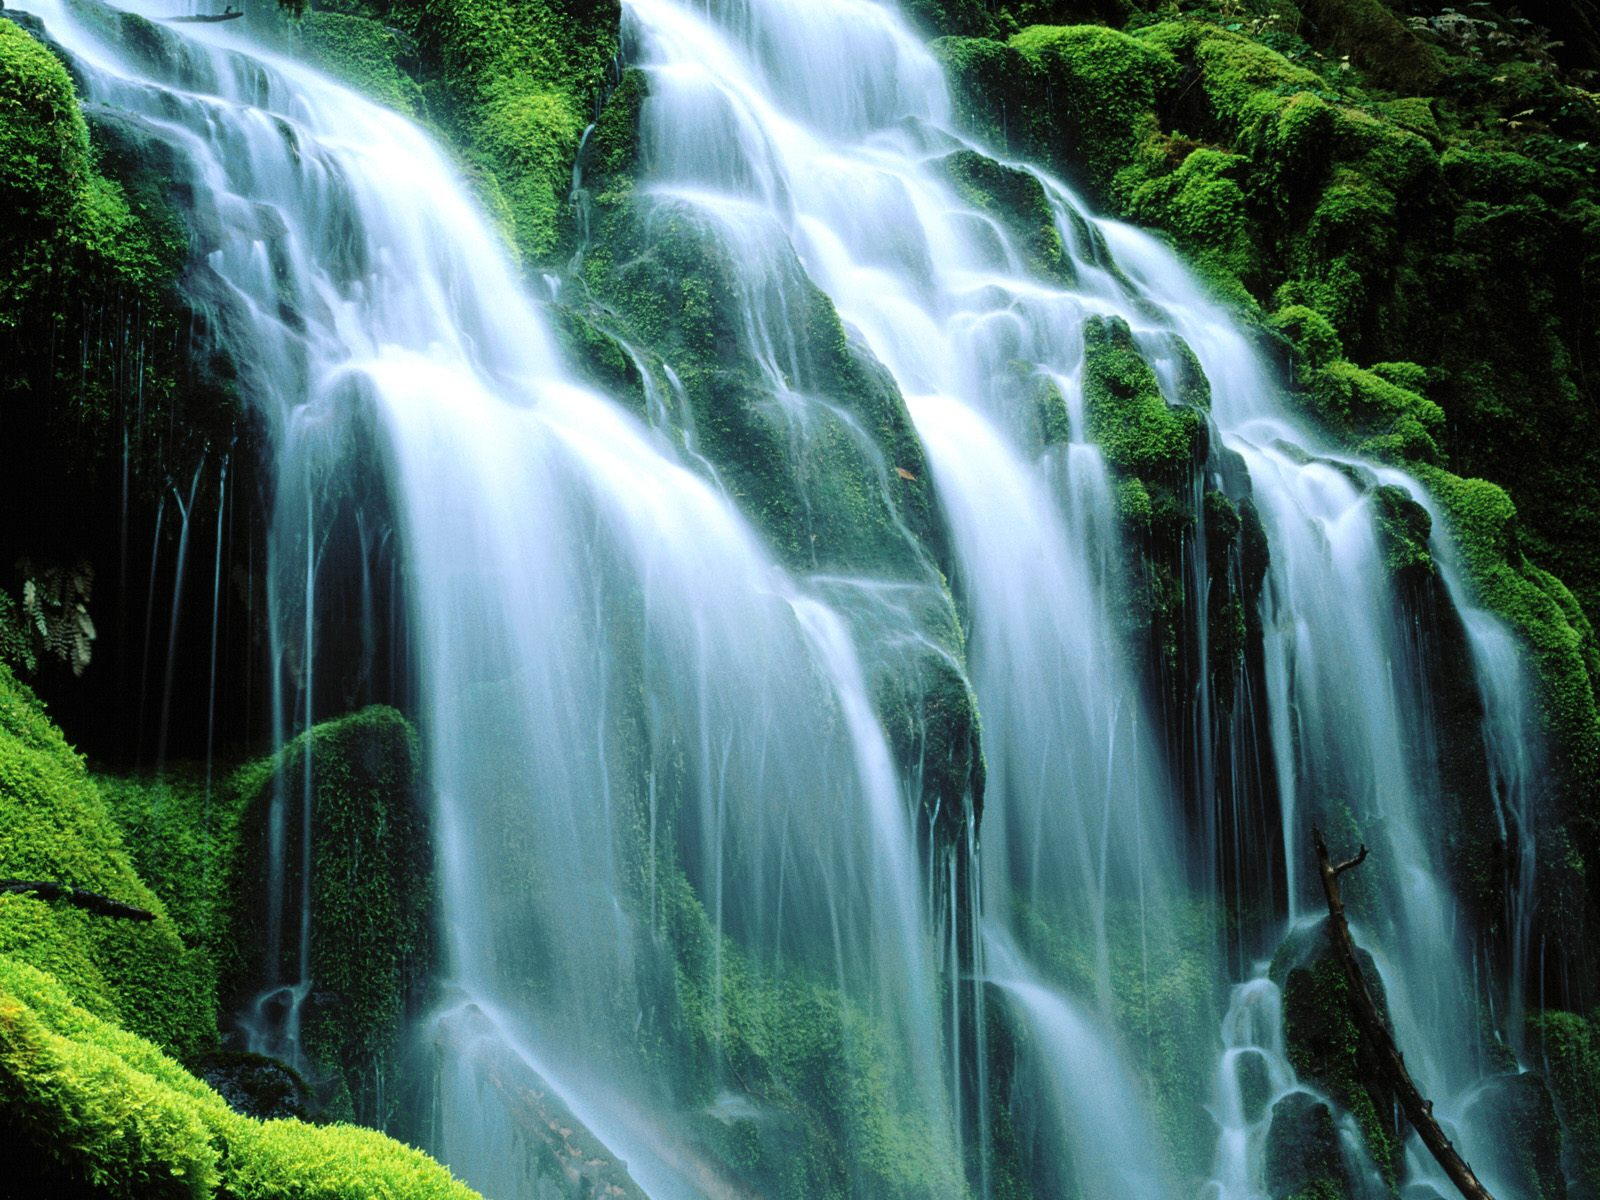 https://2.bp.blogspot.com/-tqVxAxN8KZg/TcmPjaa9baI/AAAAAAAAABs/J58Mmx5ZPnY/s1600/Waterfall-Wallpapers-Pack+%252820%2529.jpg